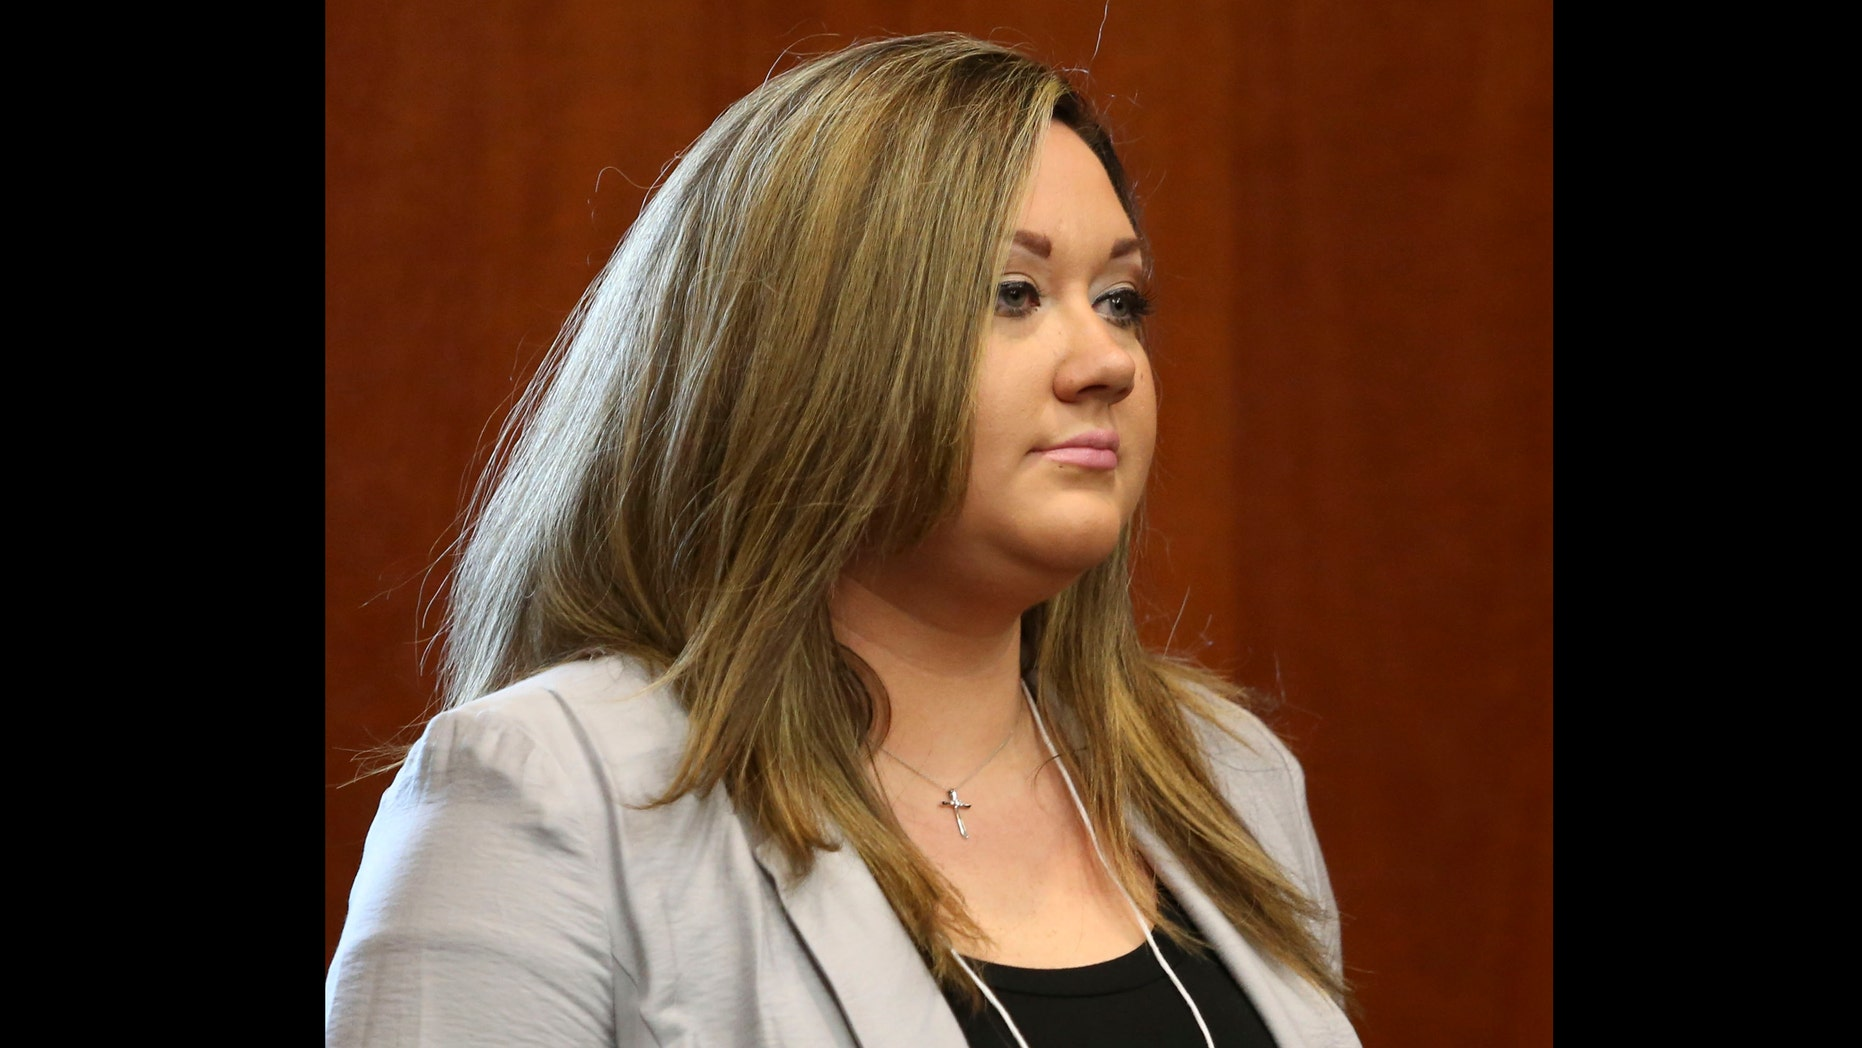 SANFORD, FL - JUNE 20: George Zimmerman's wife, Shellie Zimmerman, enters the courtroom following a recess in his trial in Seminole circuit court June 20, 2013 in Sanford, Florida.